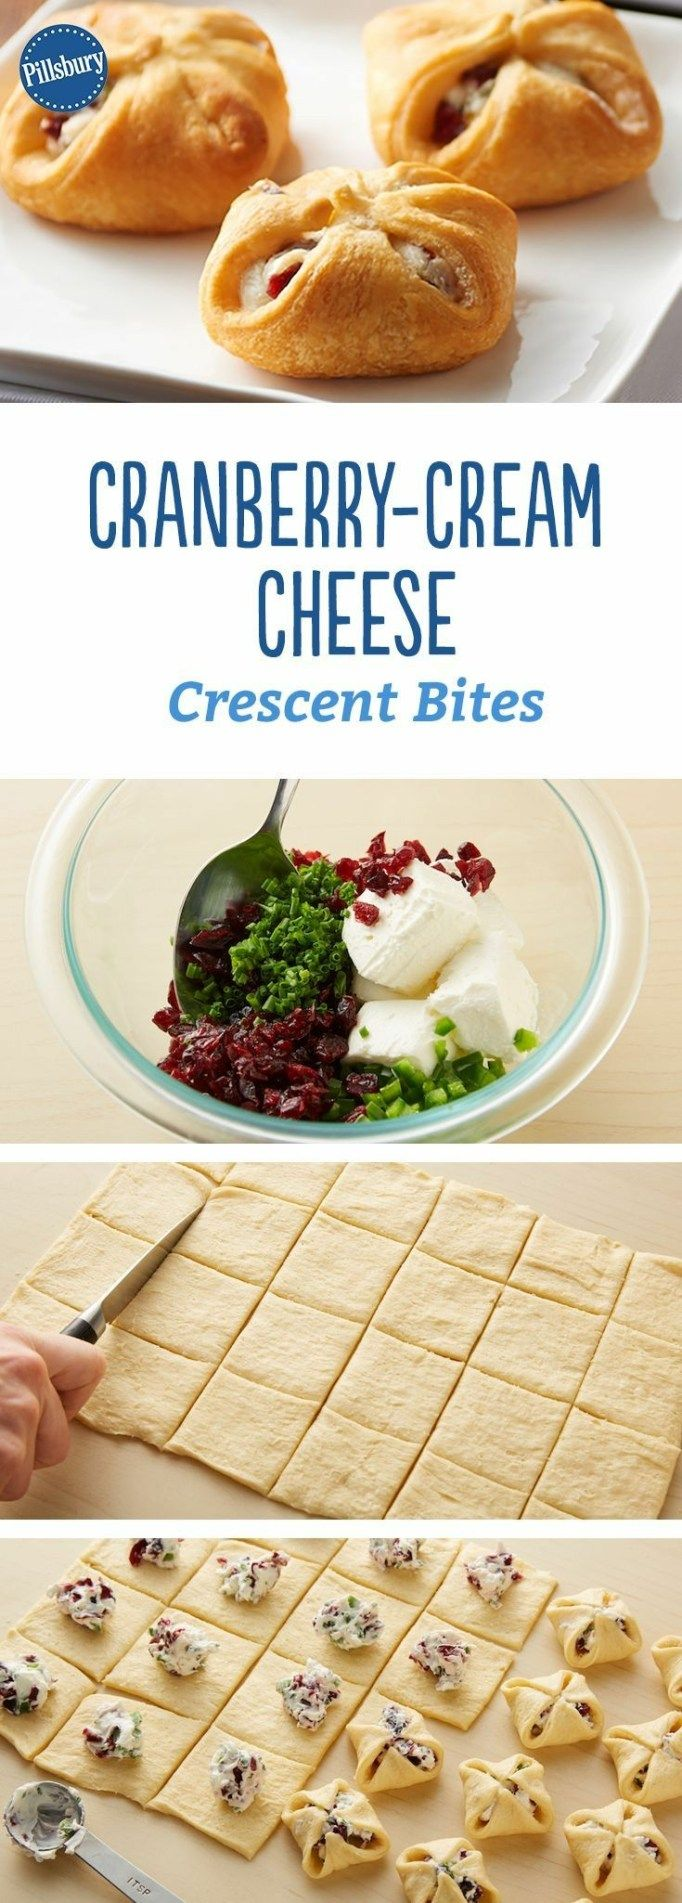 Cranberry-Cream Cheese Crescent Bites #christmasappetizers